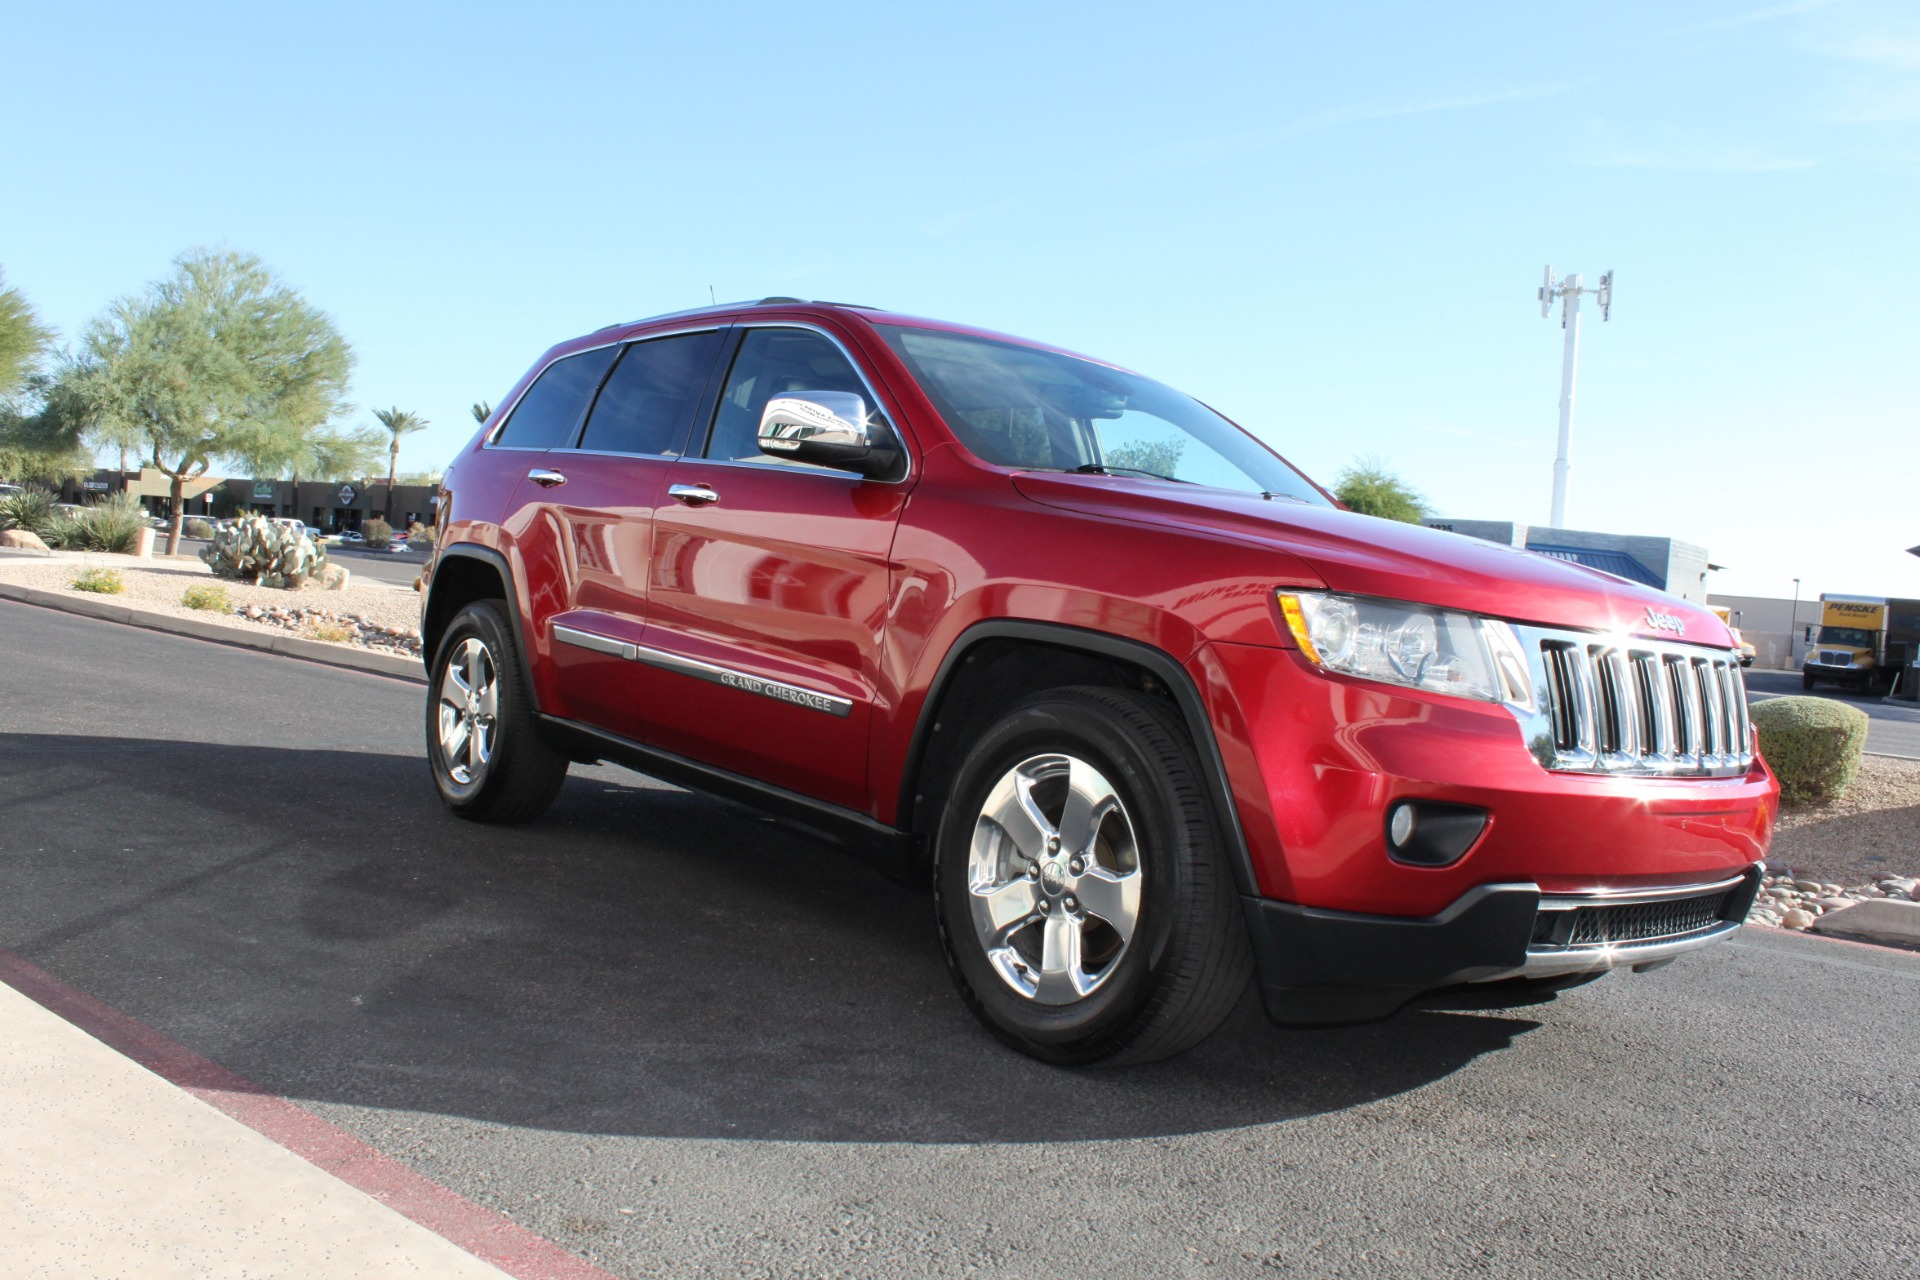 Used-2011-Jeep-Grand-Cherokee-Limited-Chevrolet